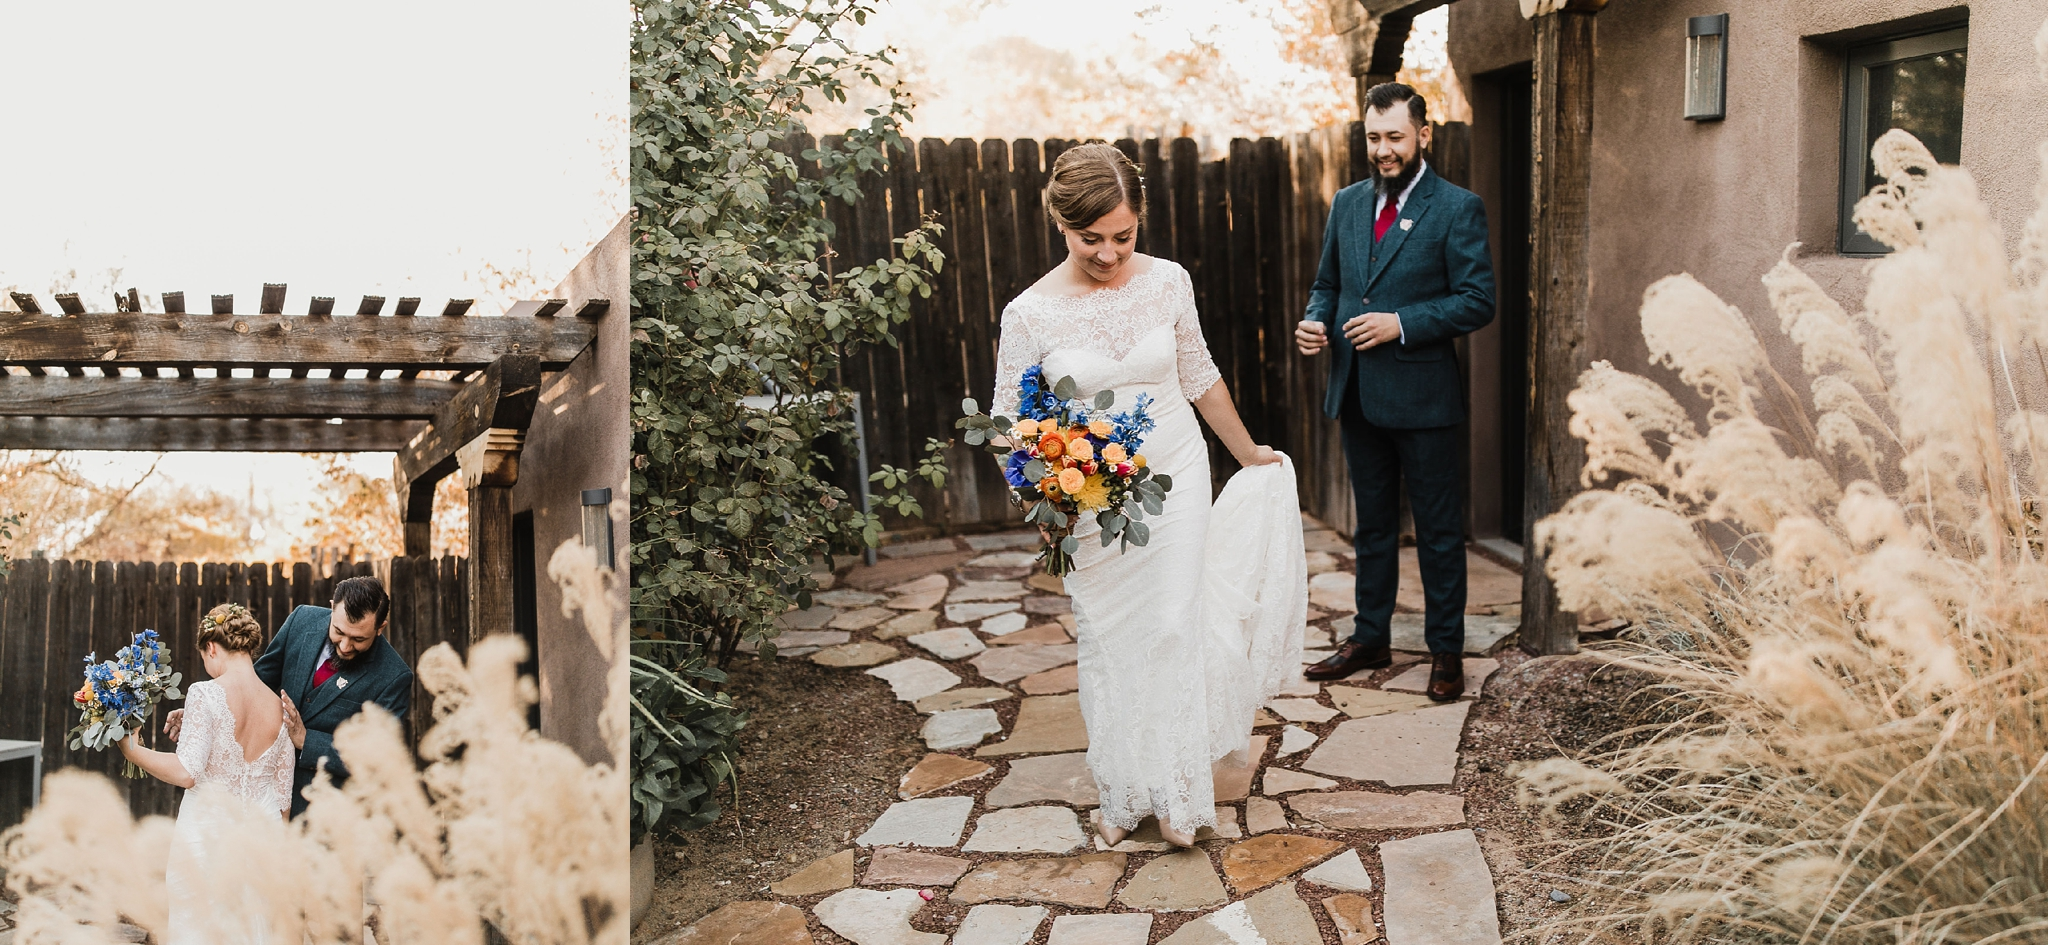 Alicia+lucia+photography+-+albuquerque+wedding+photographer+-+santa+fe+wedding+photography+-+new+mexico+wedding+photographer+-+albuquerque+wedding+-+sarabande+bed+breakfast+-+bed+and+breakfast+wedding_0026.jpg